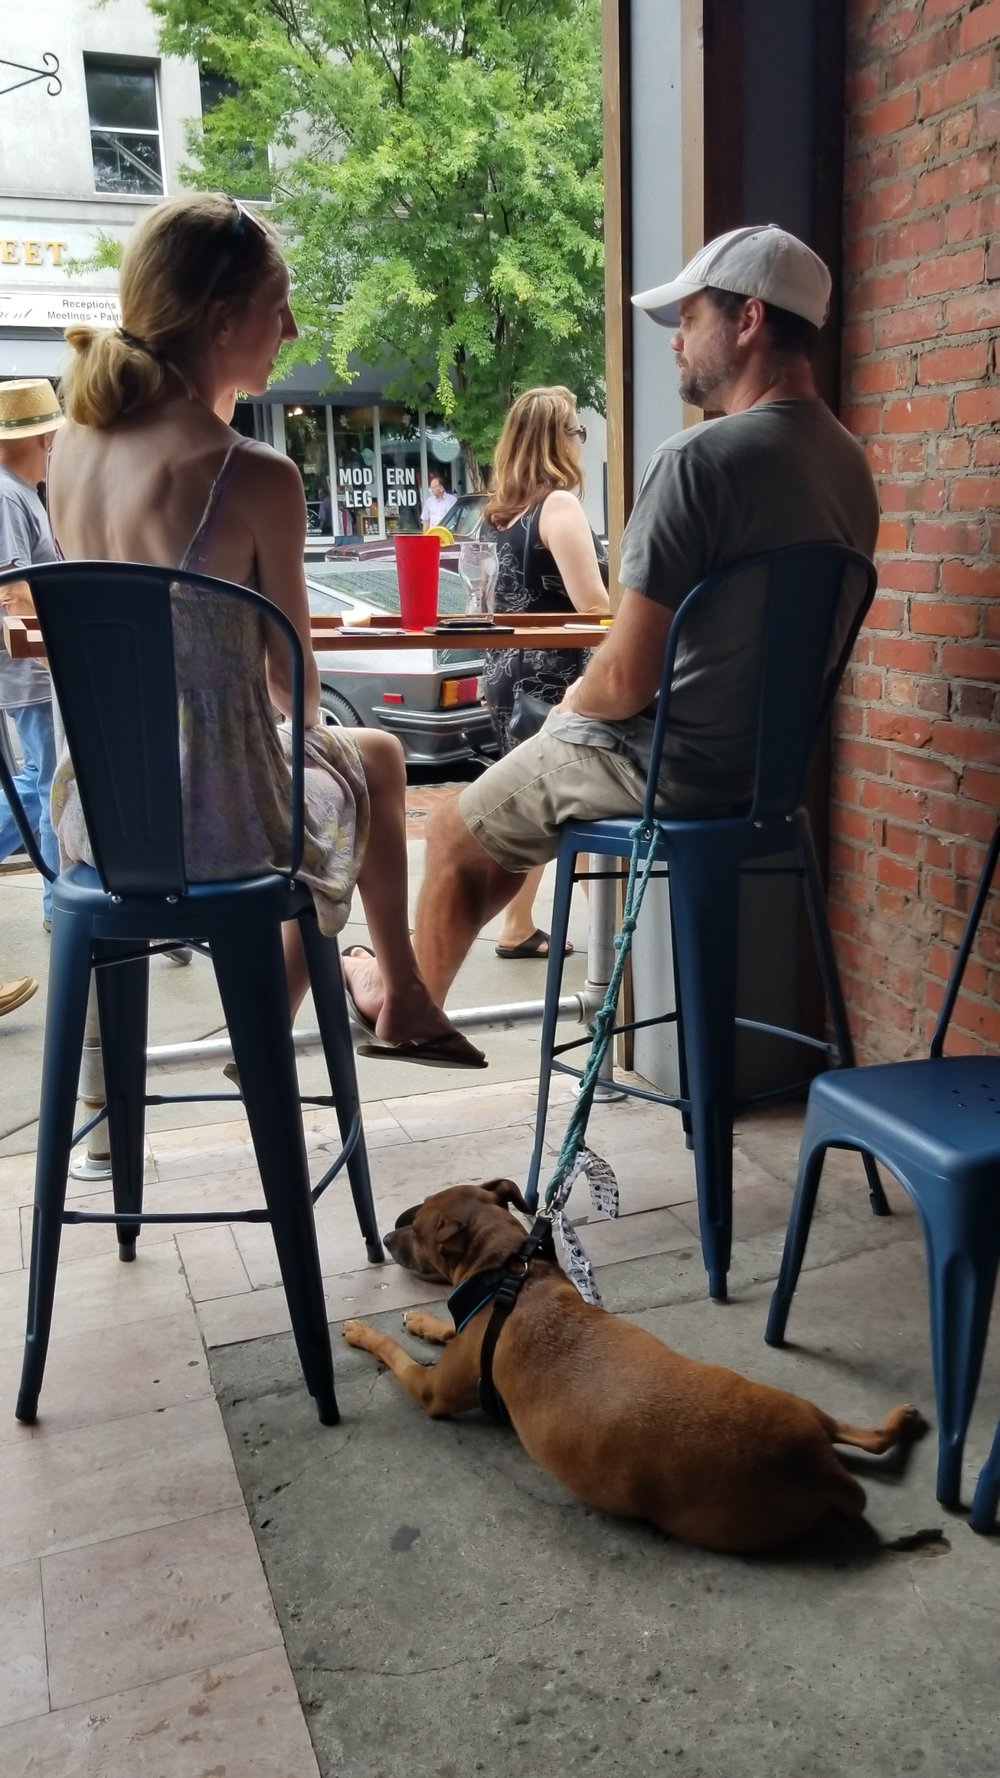 Outdoor Seating and Dog Friendly When Possible